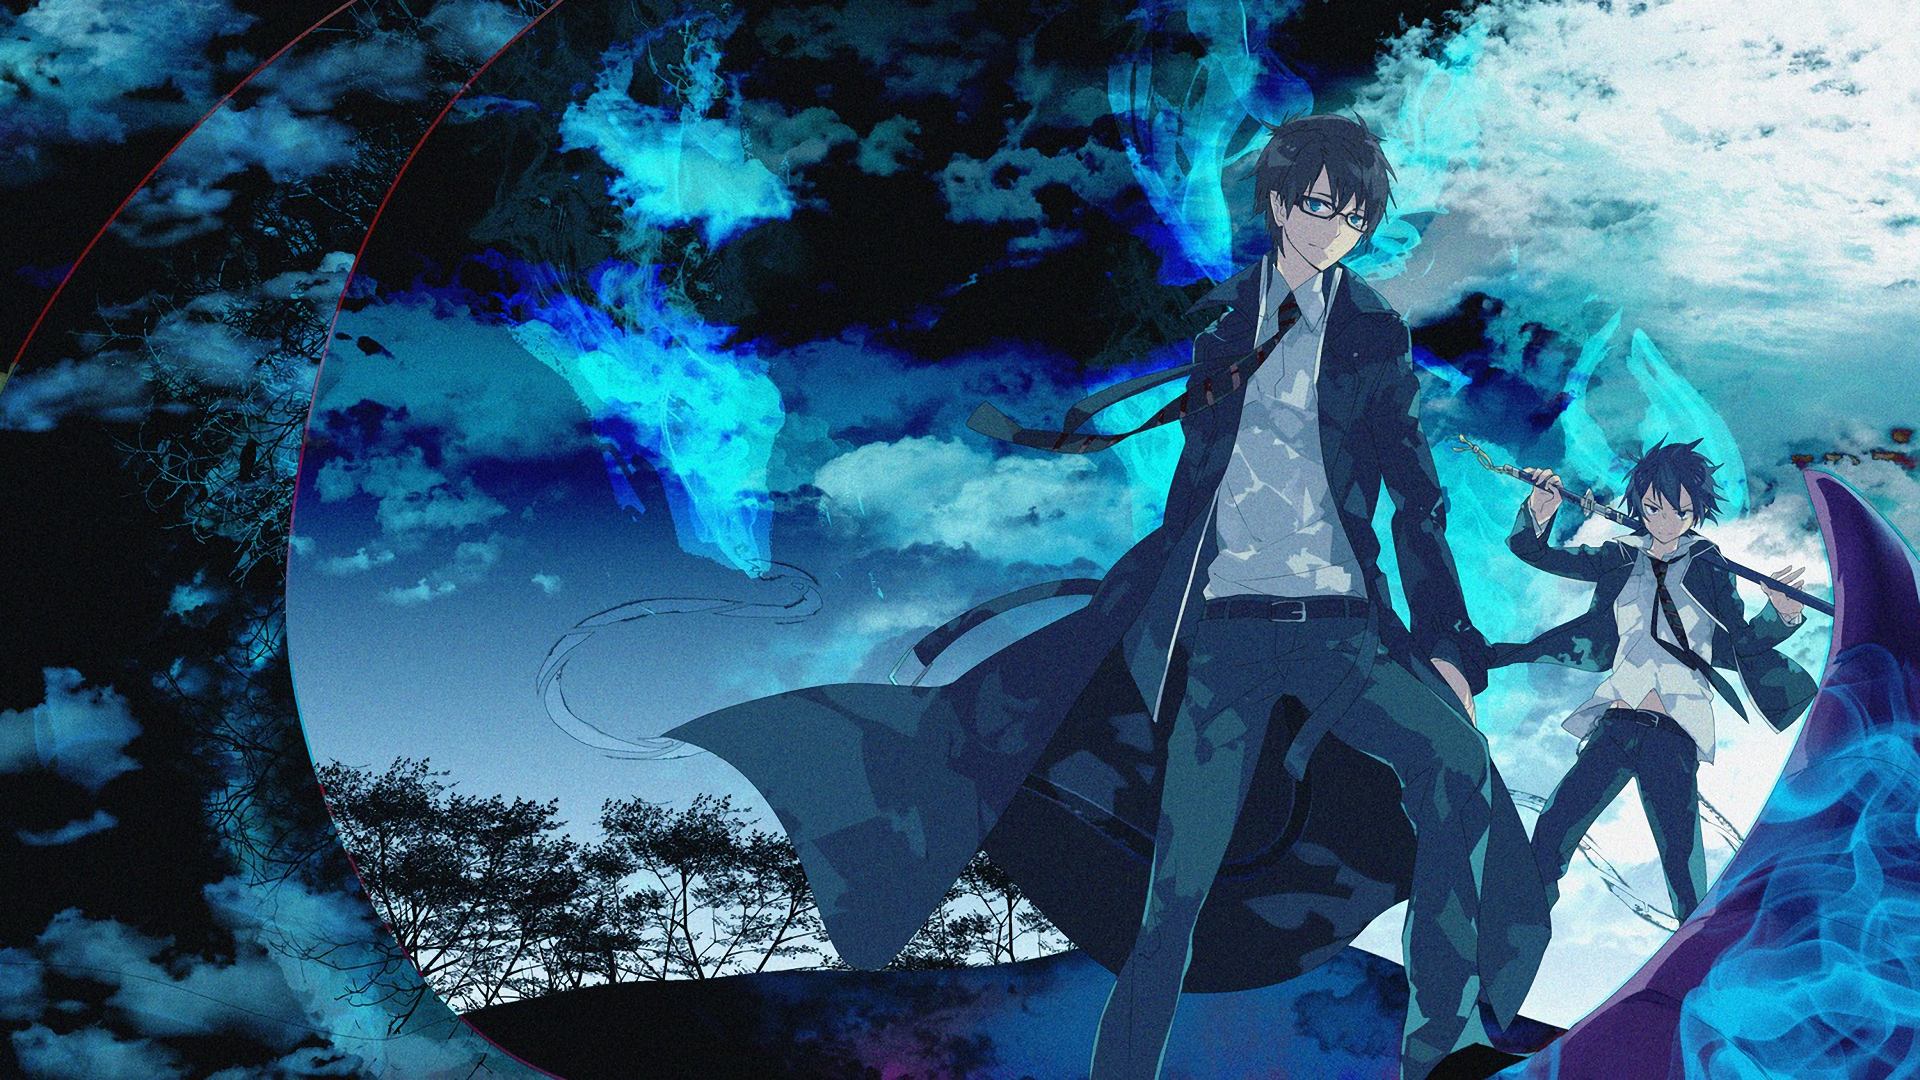 Blue exorcist hd wallpaper background image 1920x1080 - Blue exorcist wallpaper ...